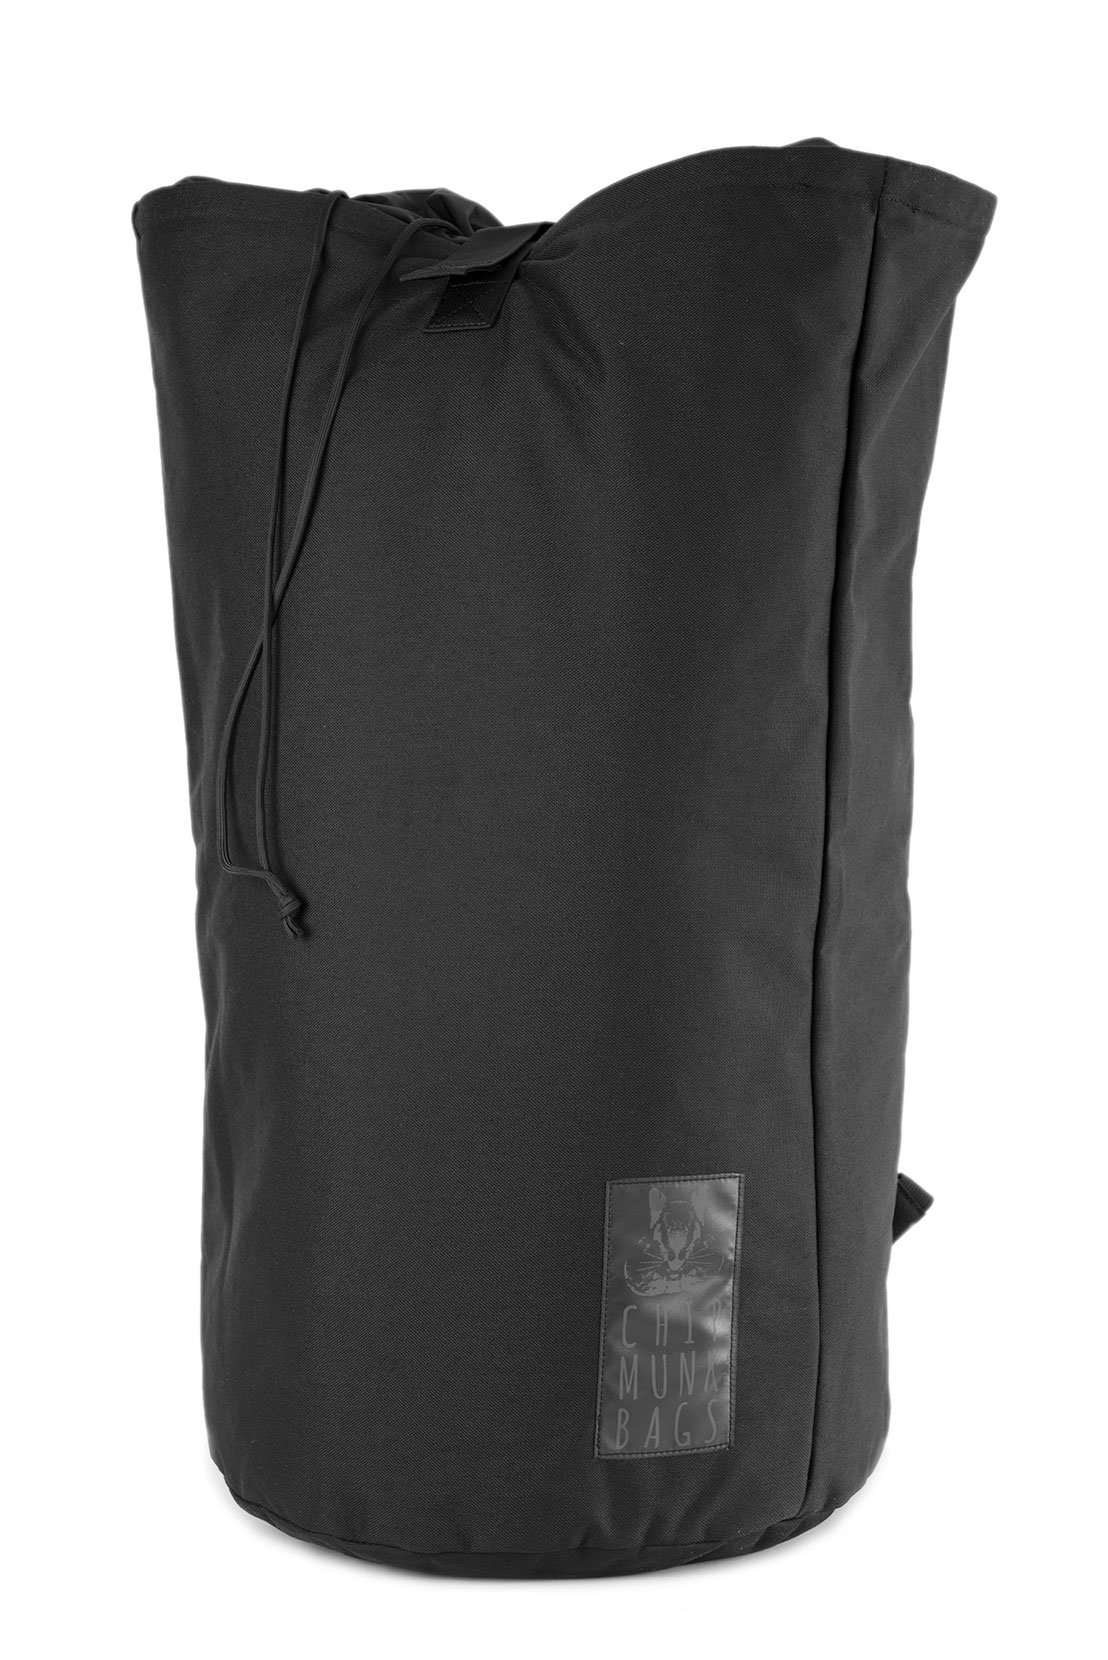 ChipmunkBags Laundry Backpacks | Durable Laundry Bags For College Students & Urban Dwellers (Large, Black)